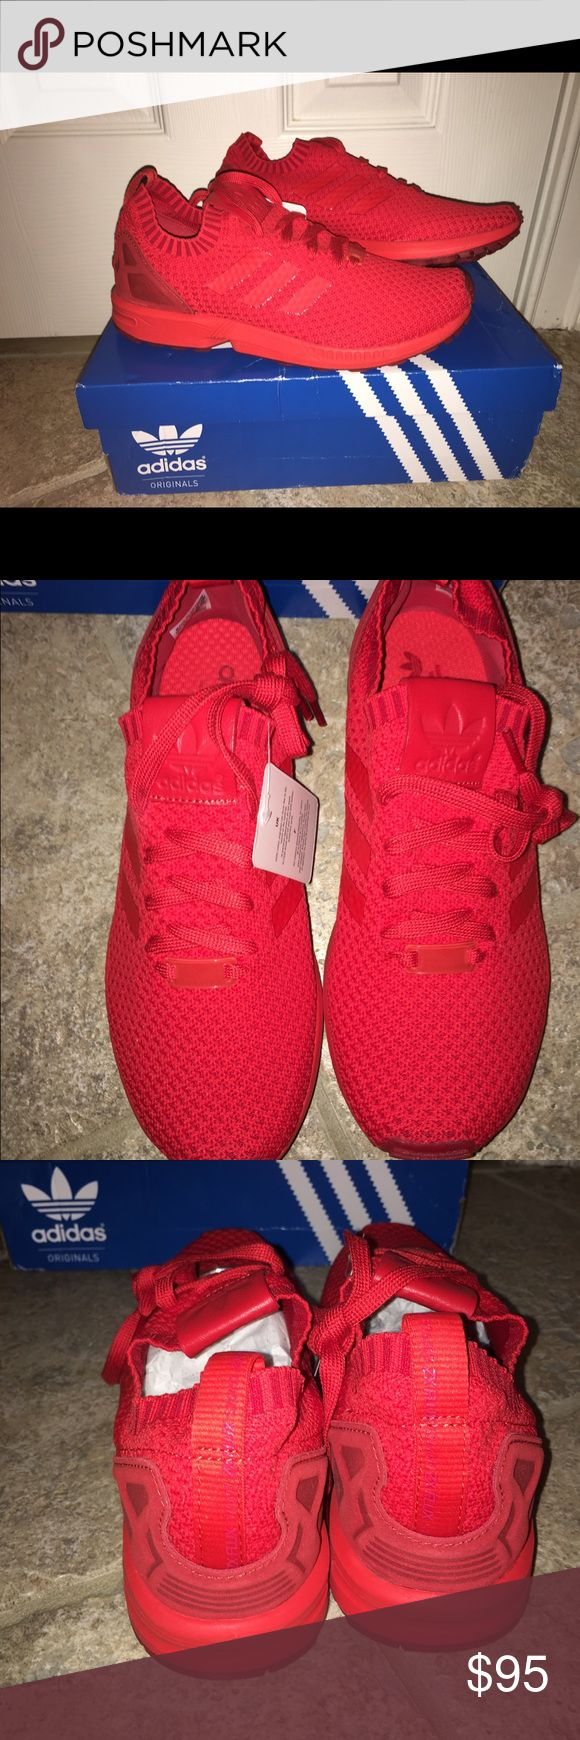 Adidas ZX Flux Primeknit - Red Adidas ZX Flux Primeknit - Red; men's; brand new with box never been worn Adidas Shoes Sneakers